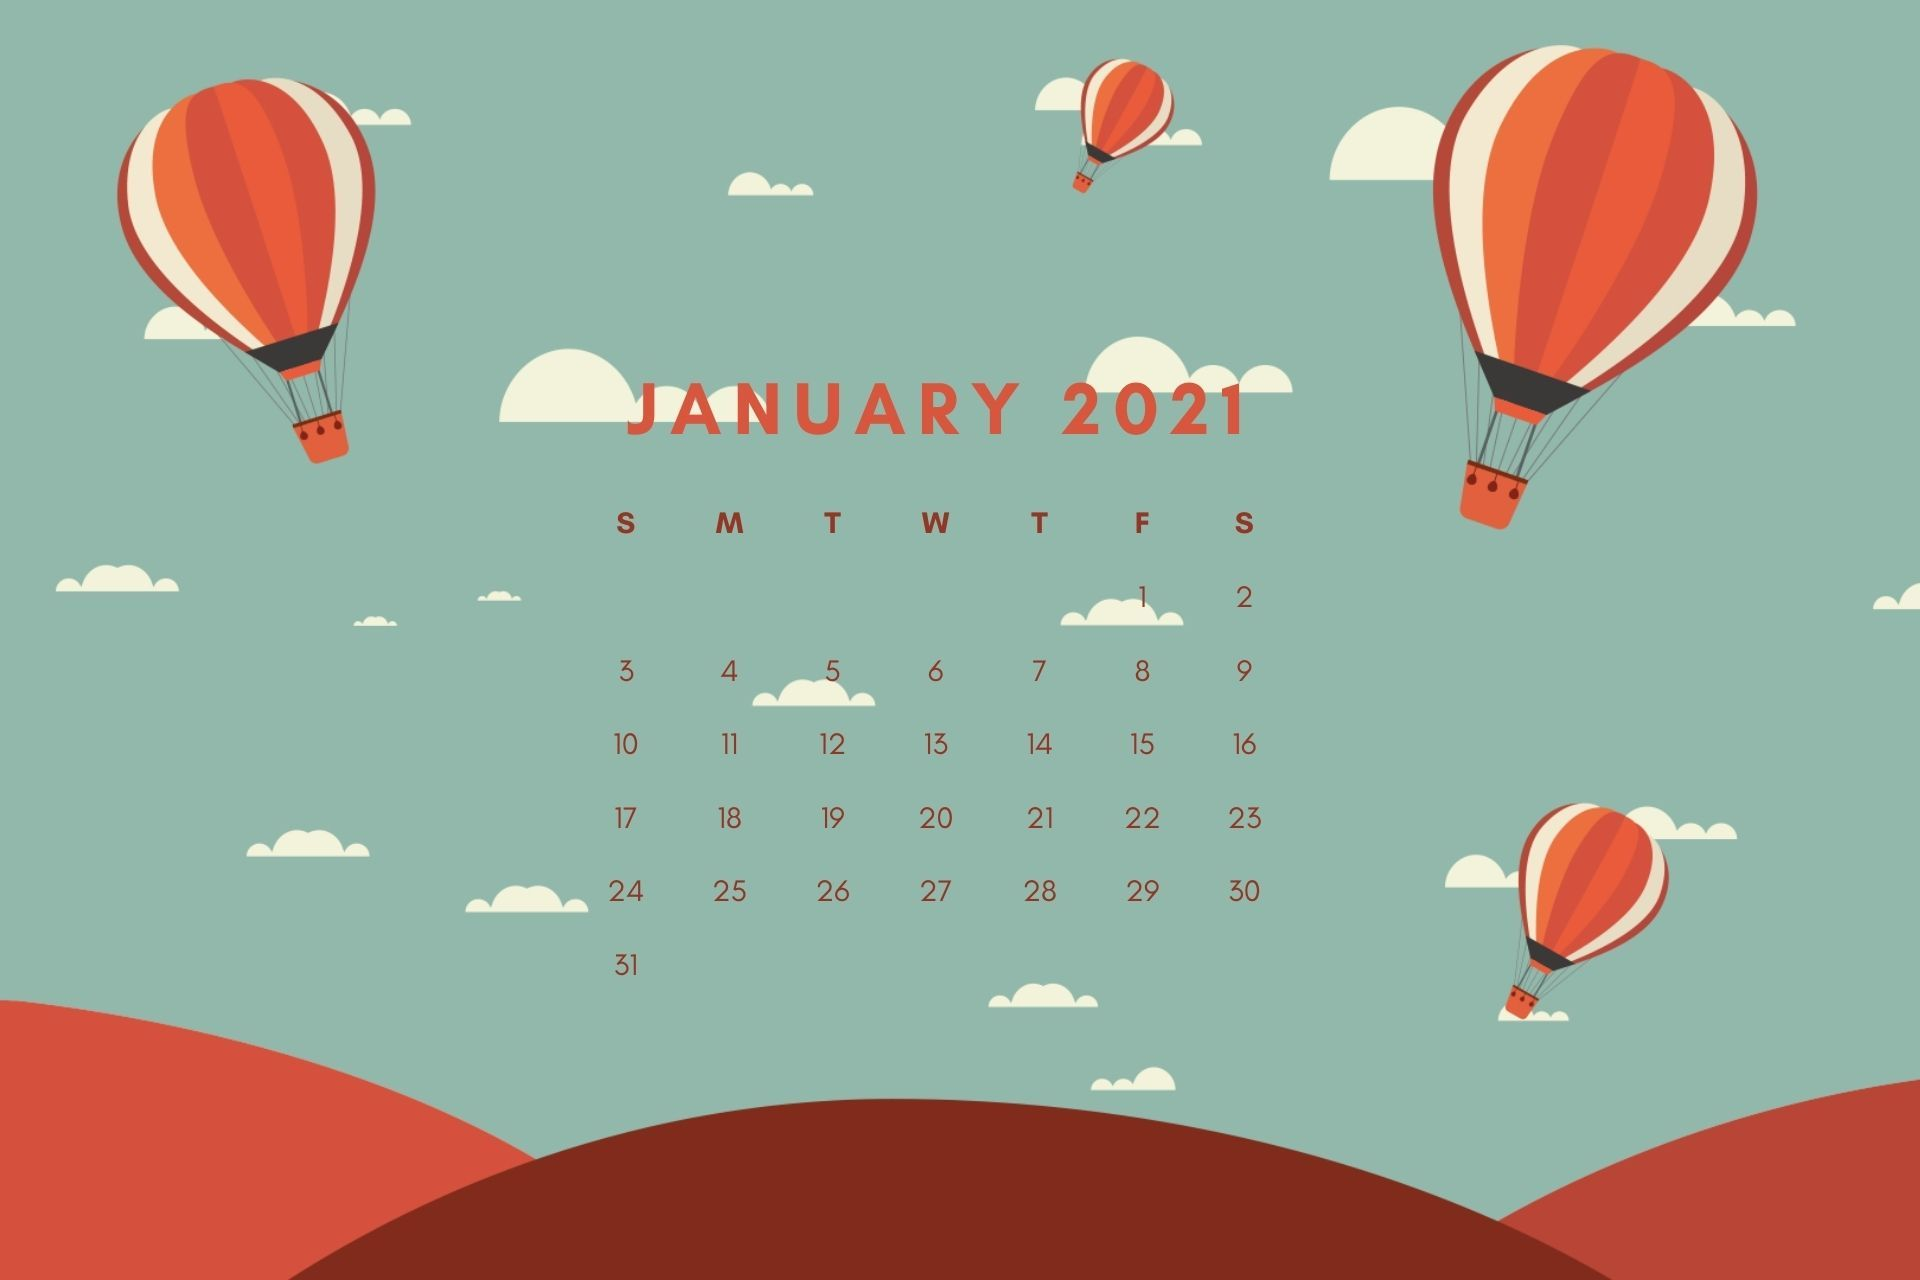 january 2021 Wallpaper Calendar